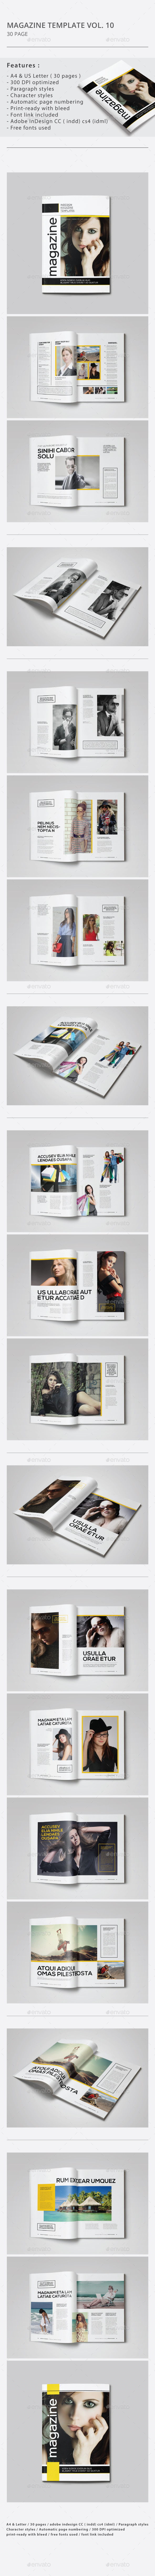 GraphicRiver Indesign Magazine Template Vol.10 9918945